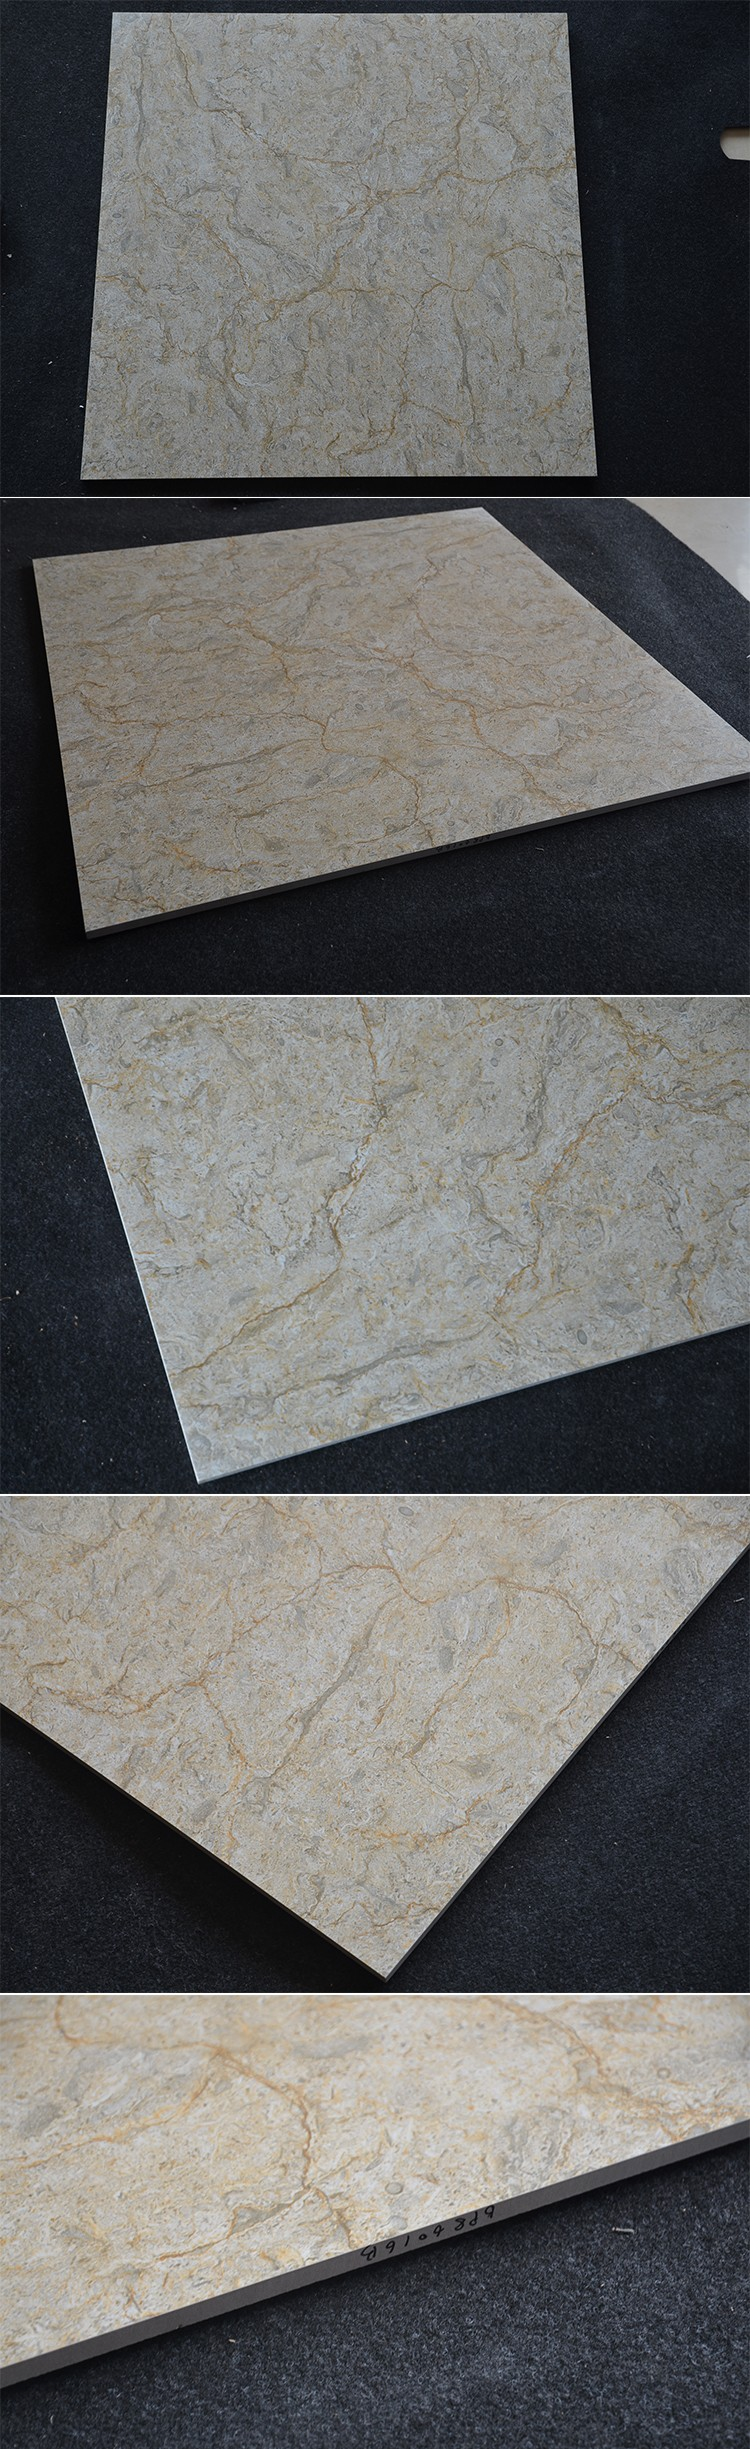 Hmp647m foshan factroy price united states ceramic tile company hmp647m foshan factroy price united states ceramic tile companyvenus ceramic tileverona ceramic dailygadgetfo Gallery